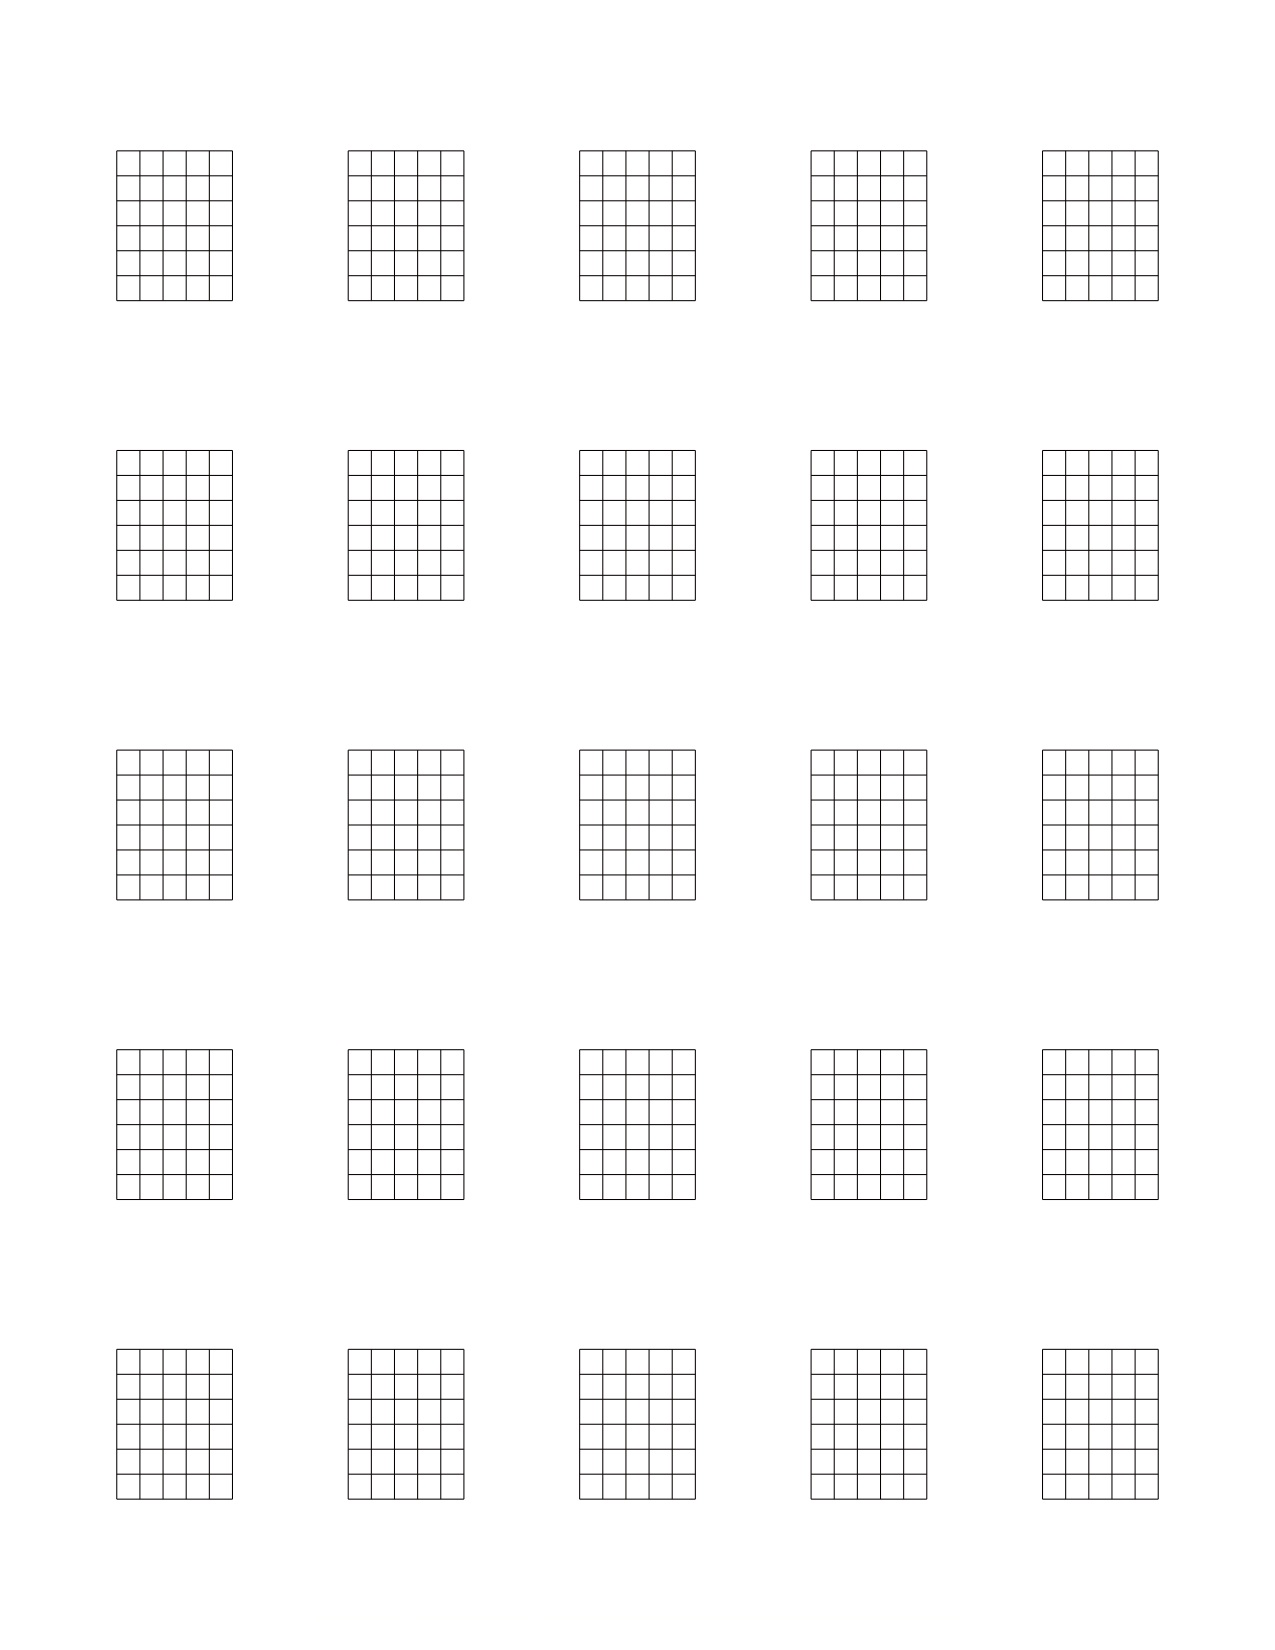 GUITAR SCALE GRID